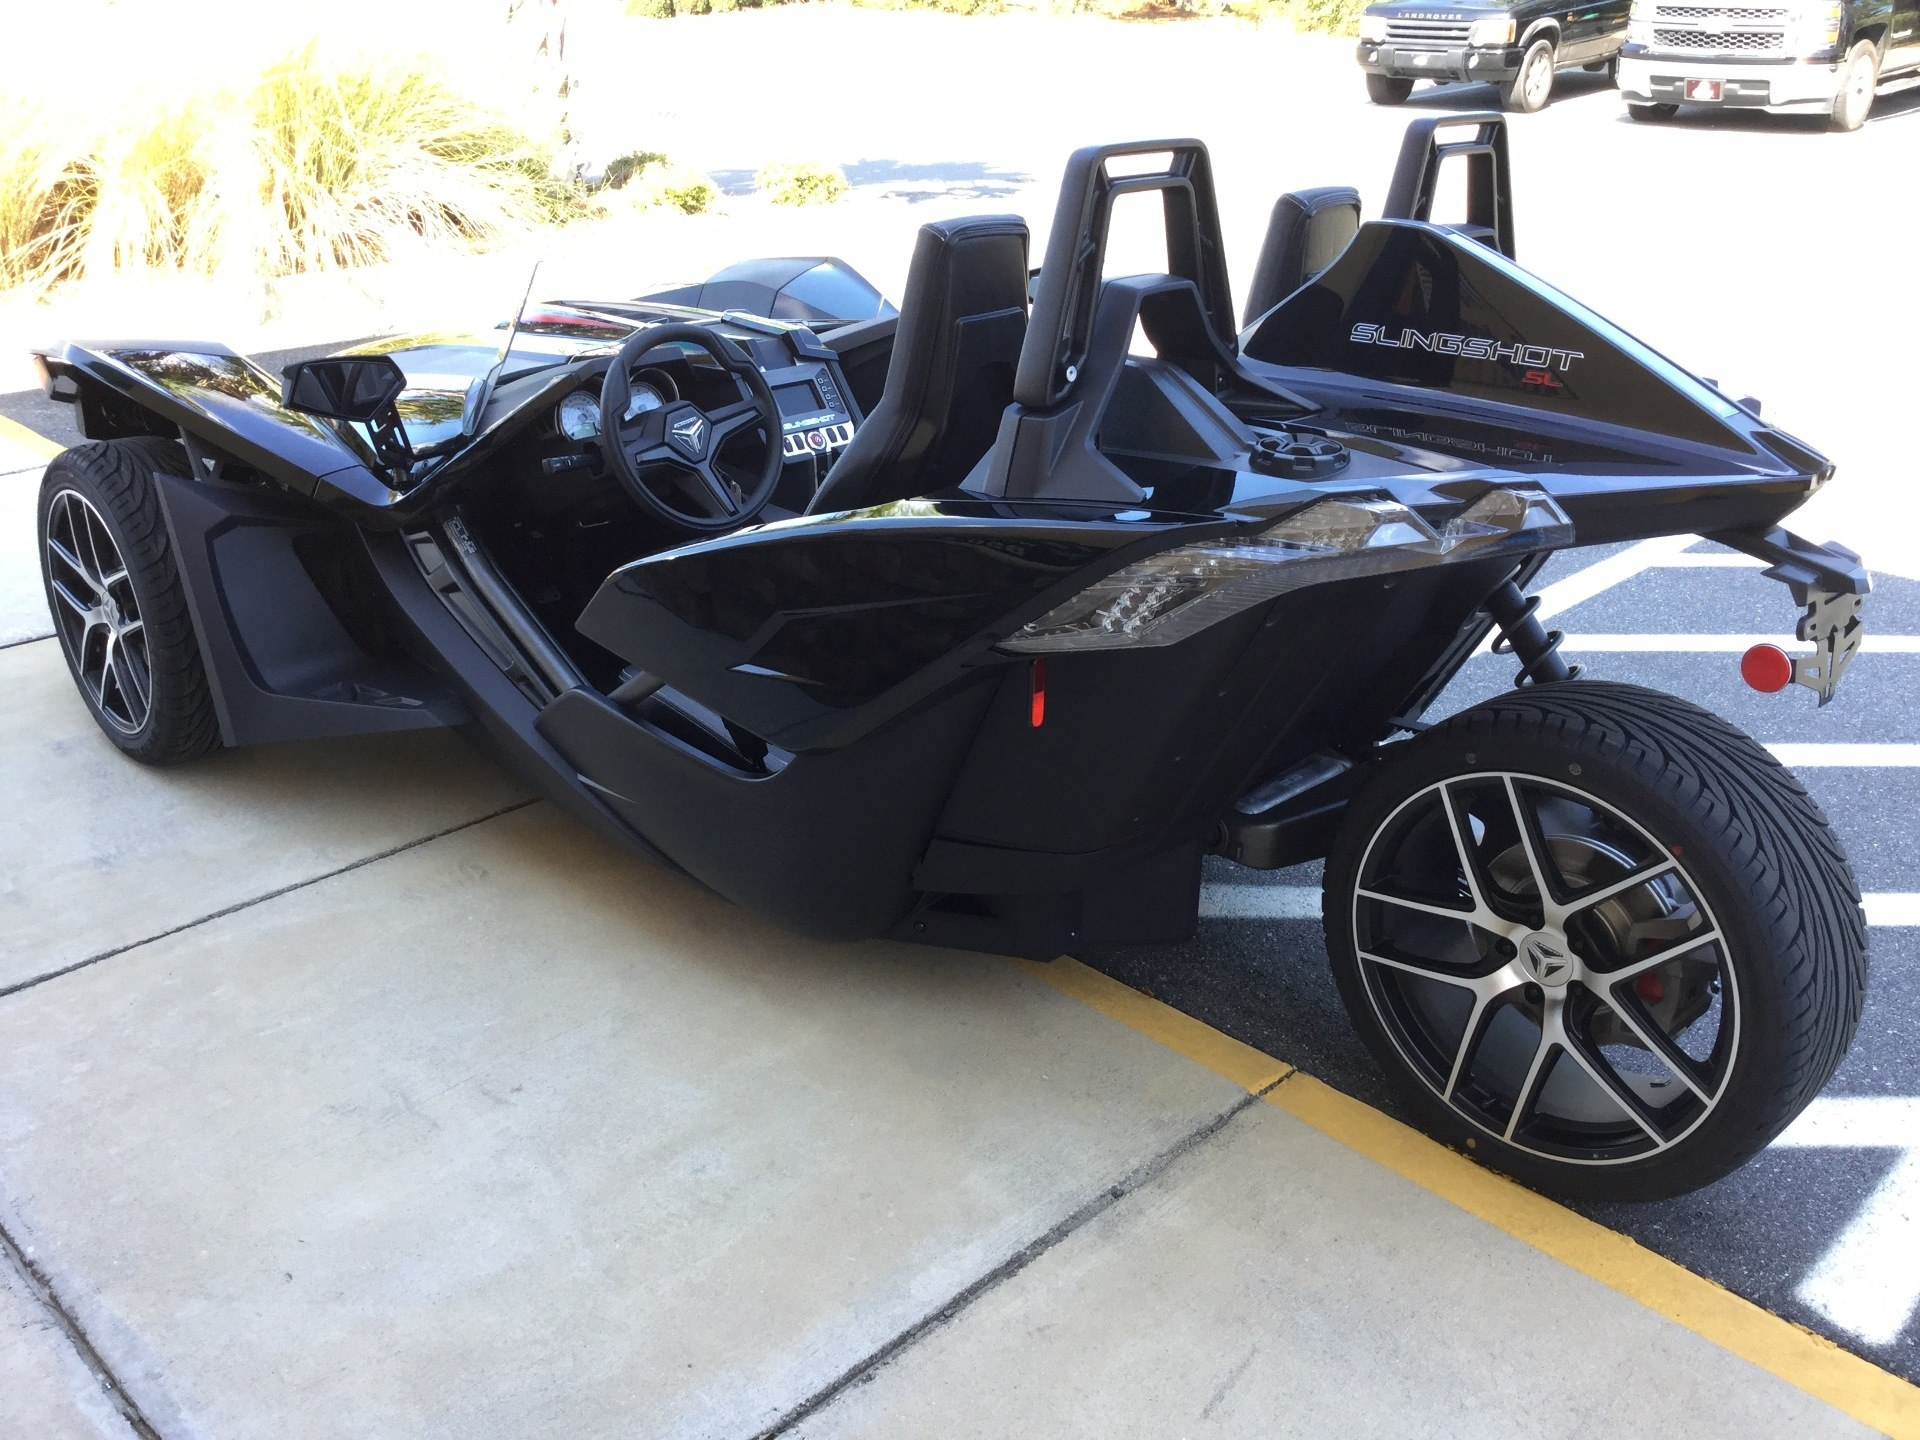 2017 Polaris SLINGSHOT SL in Panama City Beach, Florida